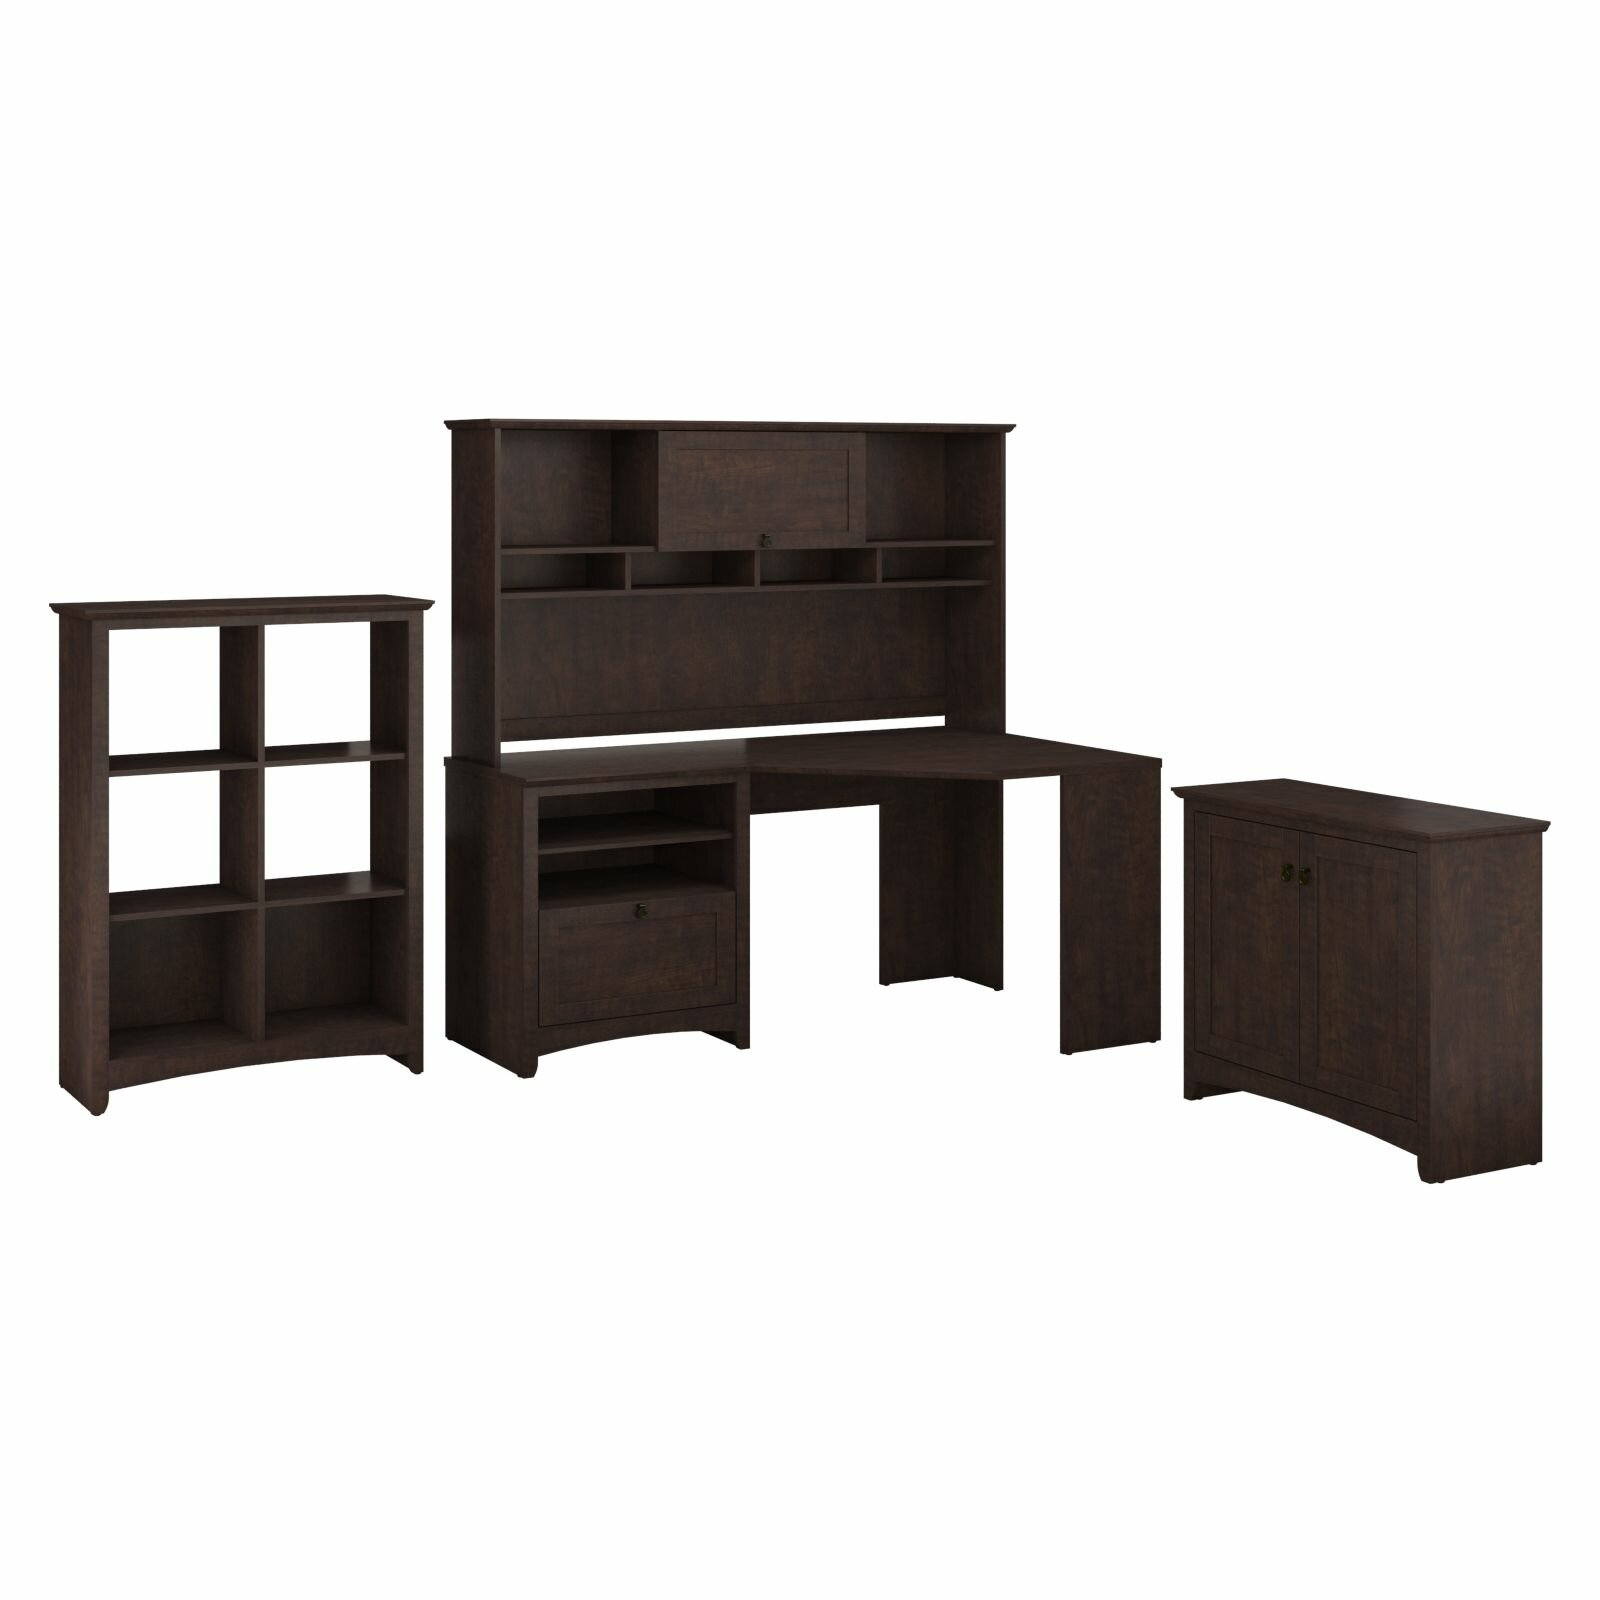 Darby home co egger corner executive desk with hutch 6 cube bookcase and low storage cabinet - Staples corner storage ...